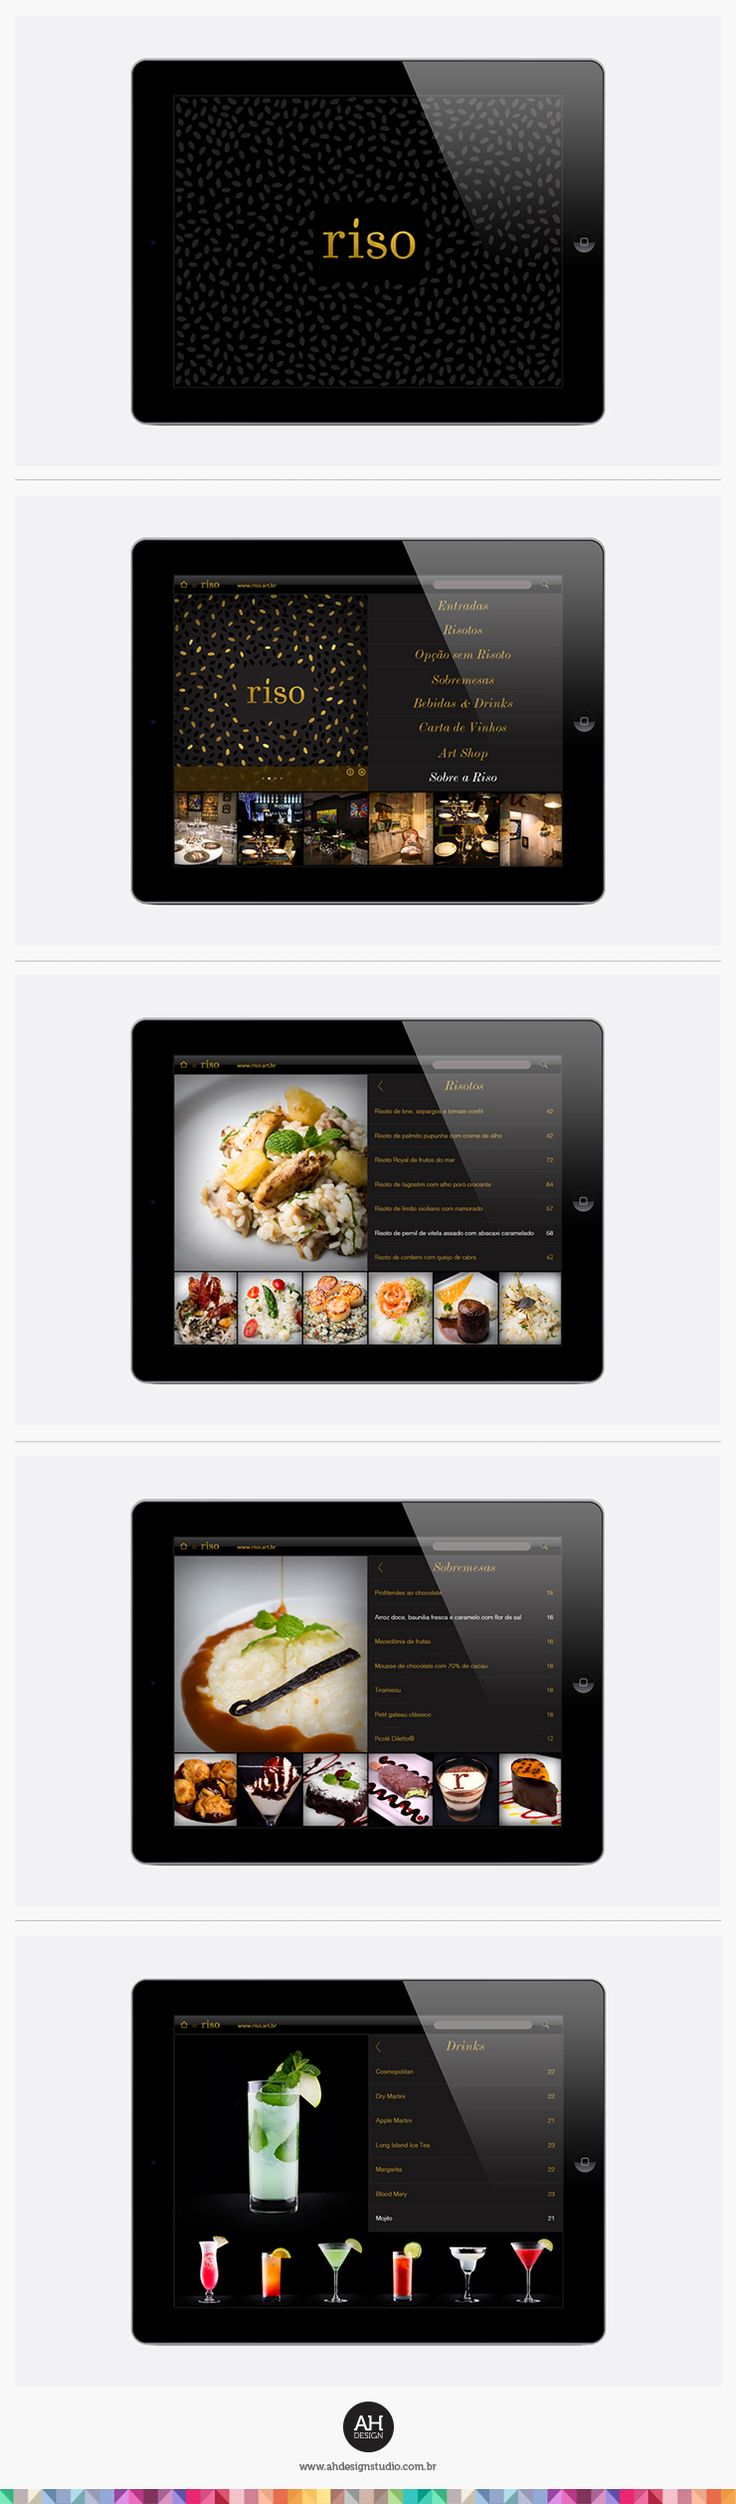 AHdesign Studio, Design de App para Riso Menu #design, #graphicdesign, #idvisual, #branding, #menudesign, #cardapio, #app, #aplicativo, #ipad, #applestore, #adesignstudio